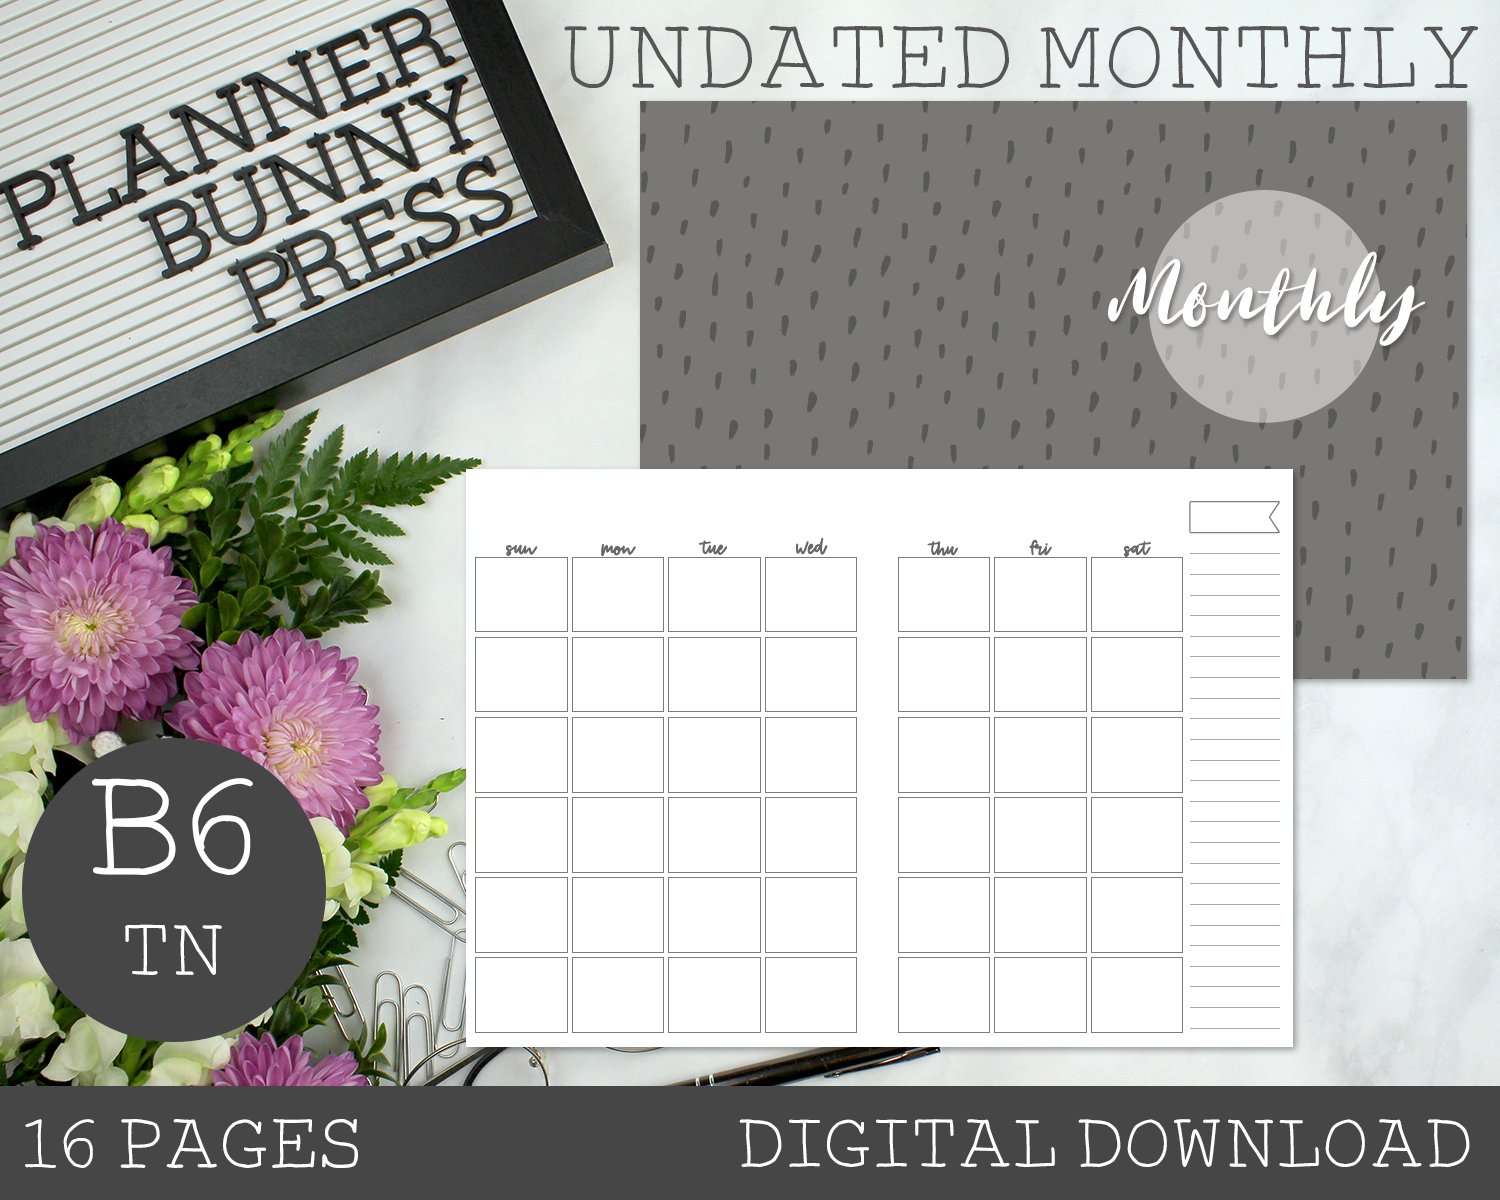 B6 TN Undated Monthly PRINTABLE Insert